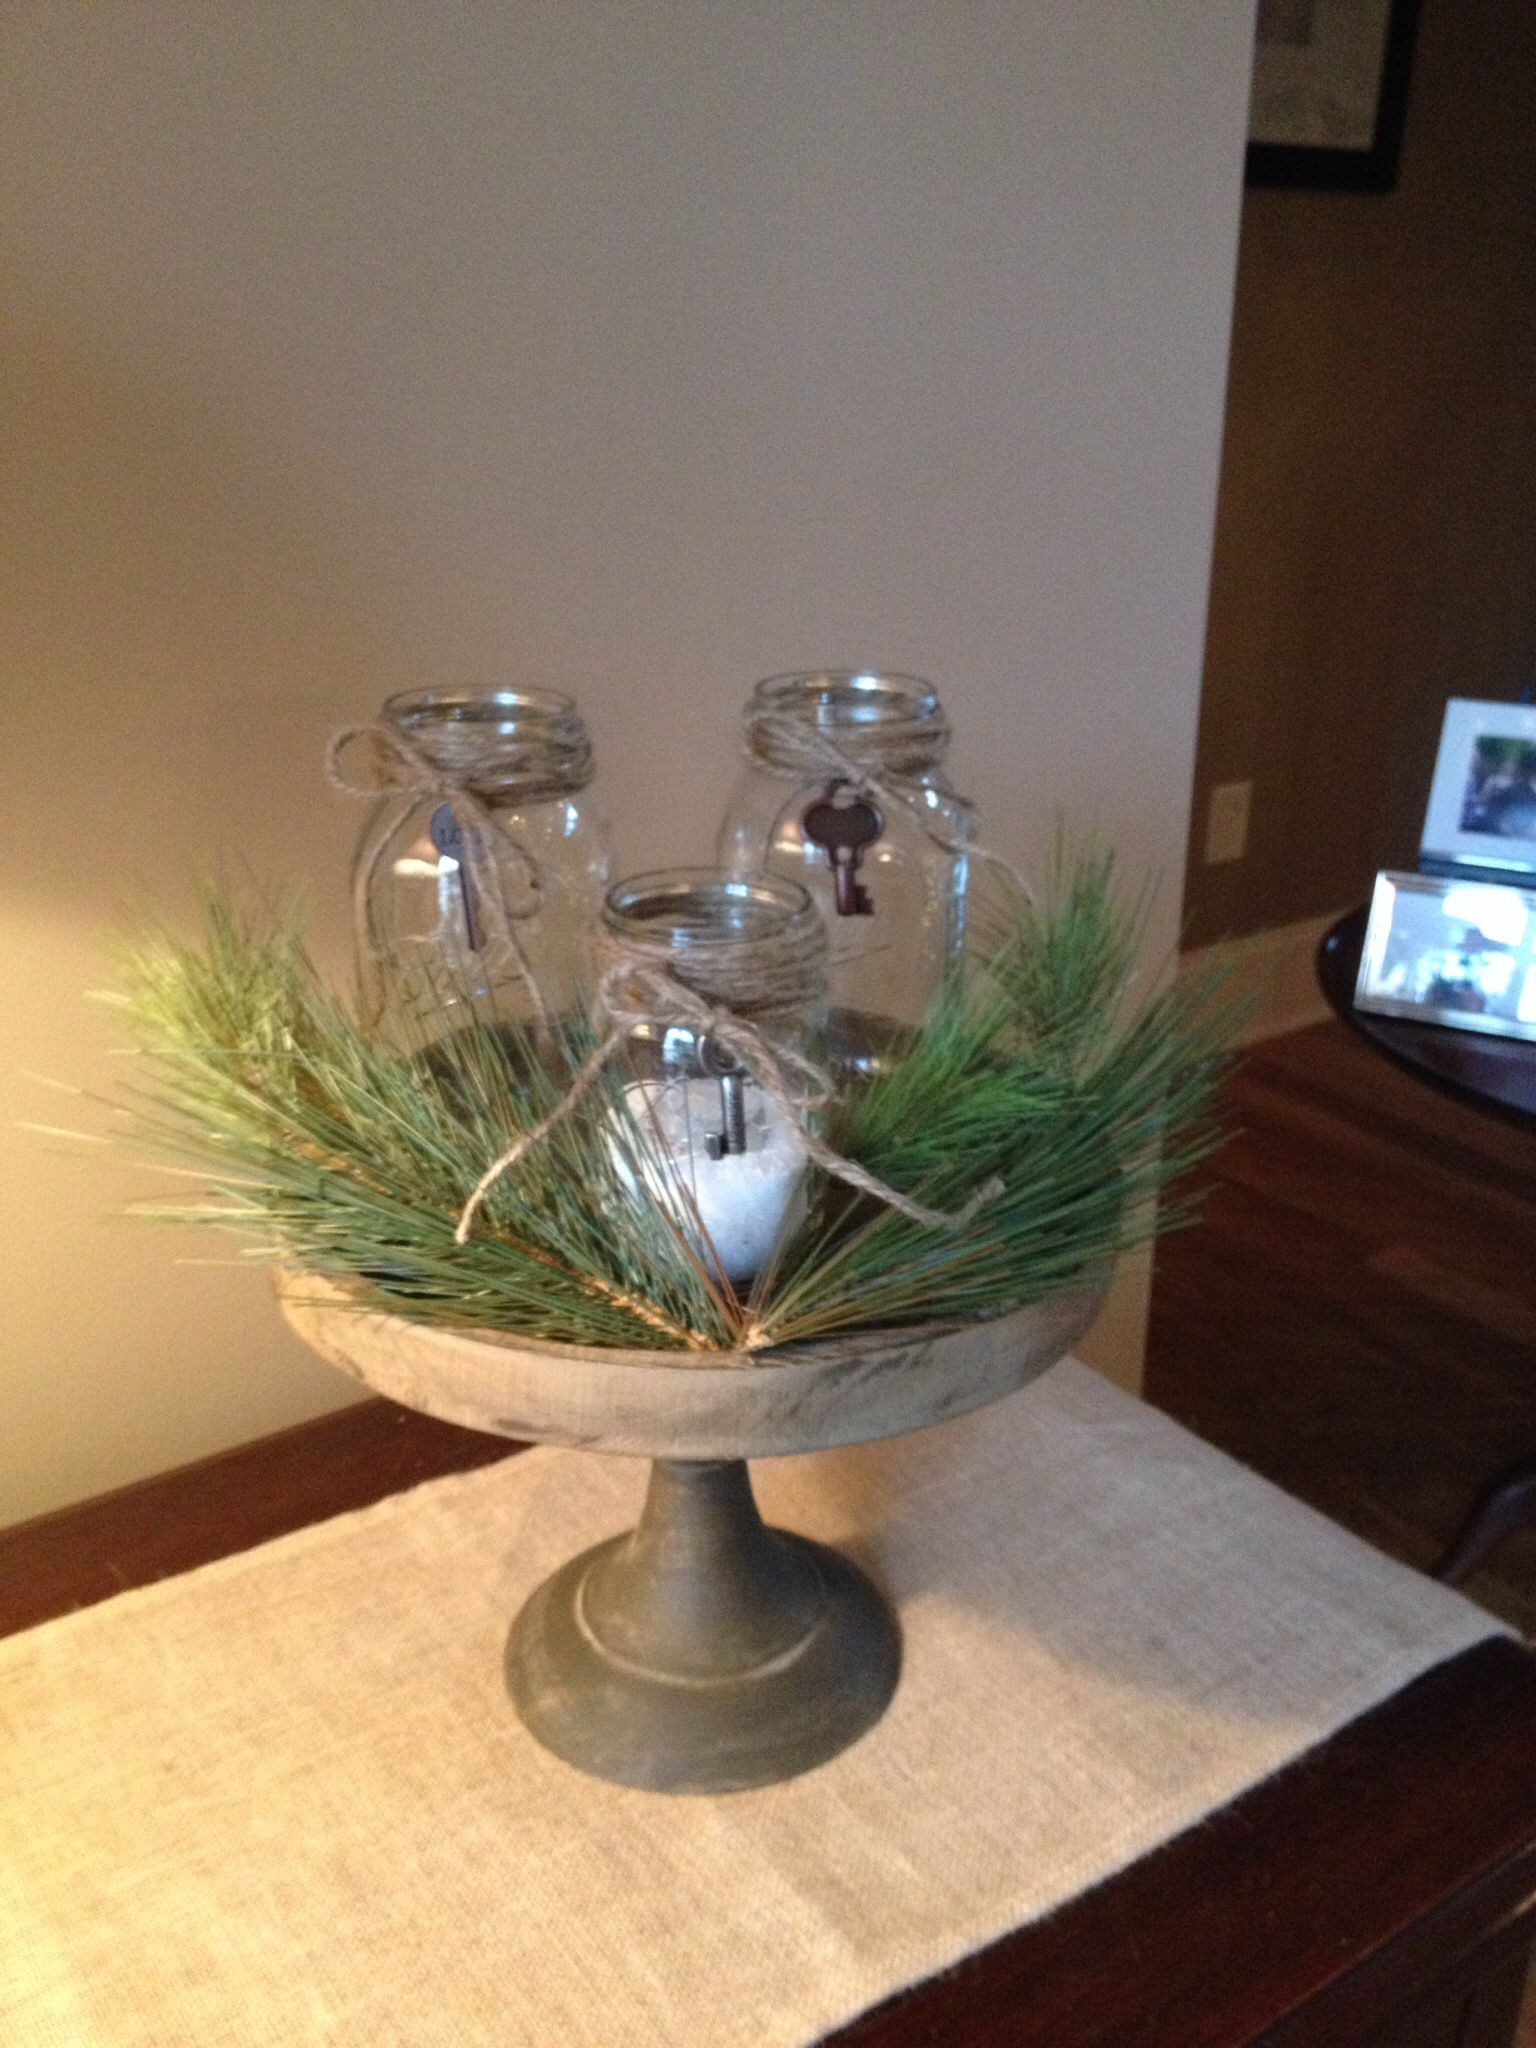 Rustic Table Stand From My Favorite Local Home Decor Store In Dawsonville  With Mason Jars,